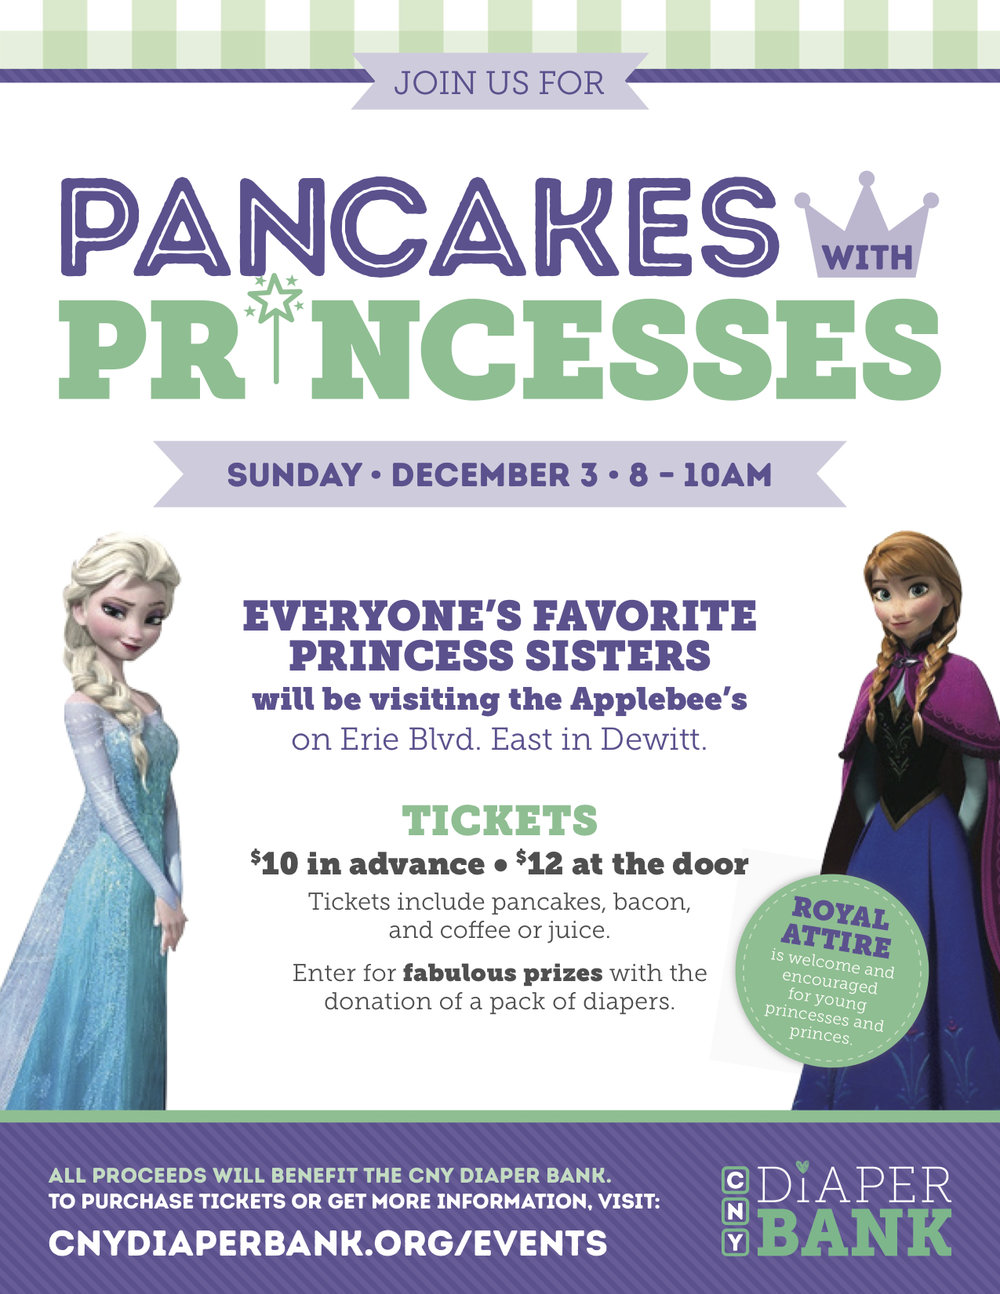 CNY Diaper Bank Pancakes with Princesses Flyer REV.jpg